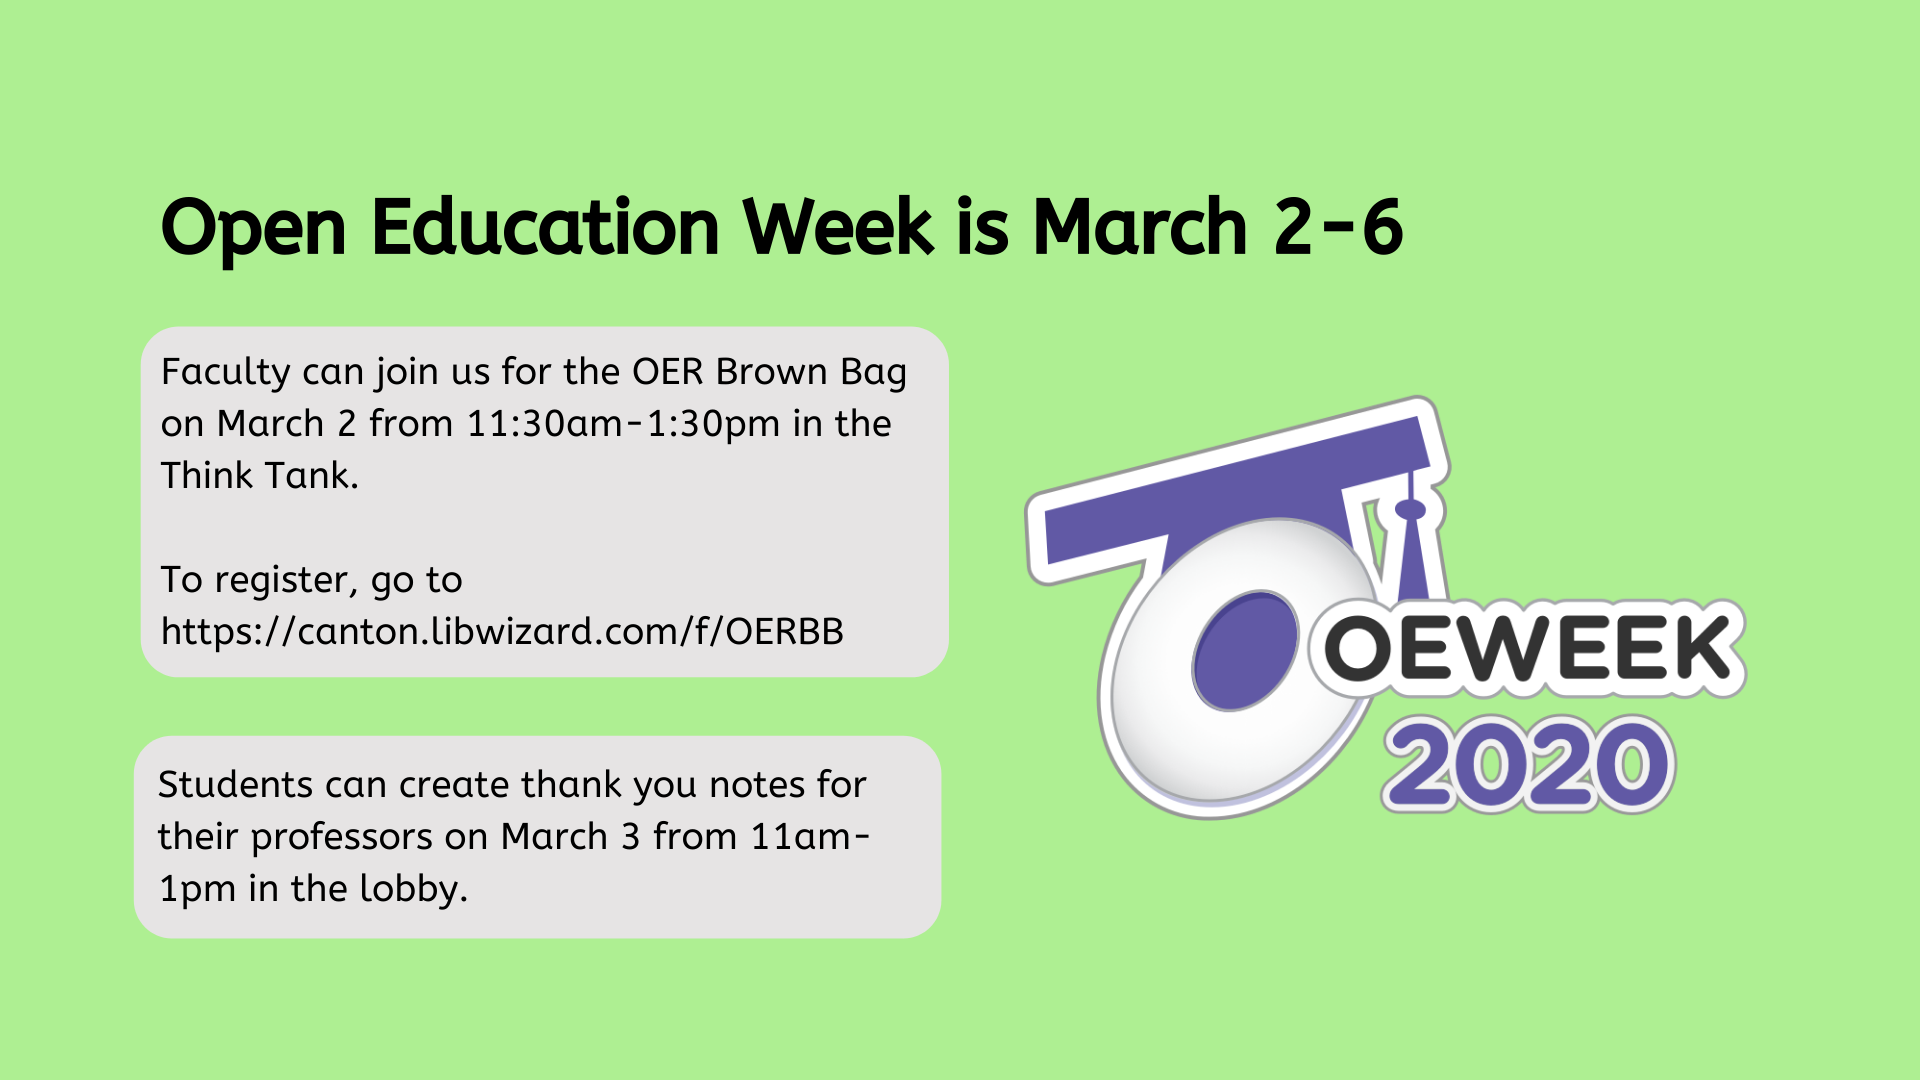 Open Education Week is March 2-6, Faculty can join us for the OER Brown Bag on March 2 from 11:30am-1:30pm in the Think Tank.  To register, go to https://canton.libwizard.com/f/OERBB, Students can create thank you notes for their professors on March 3 from 11am-1pm in the lobby.